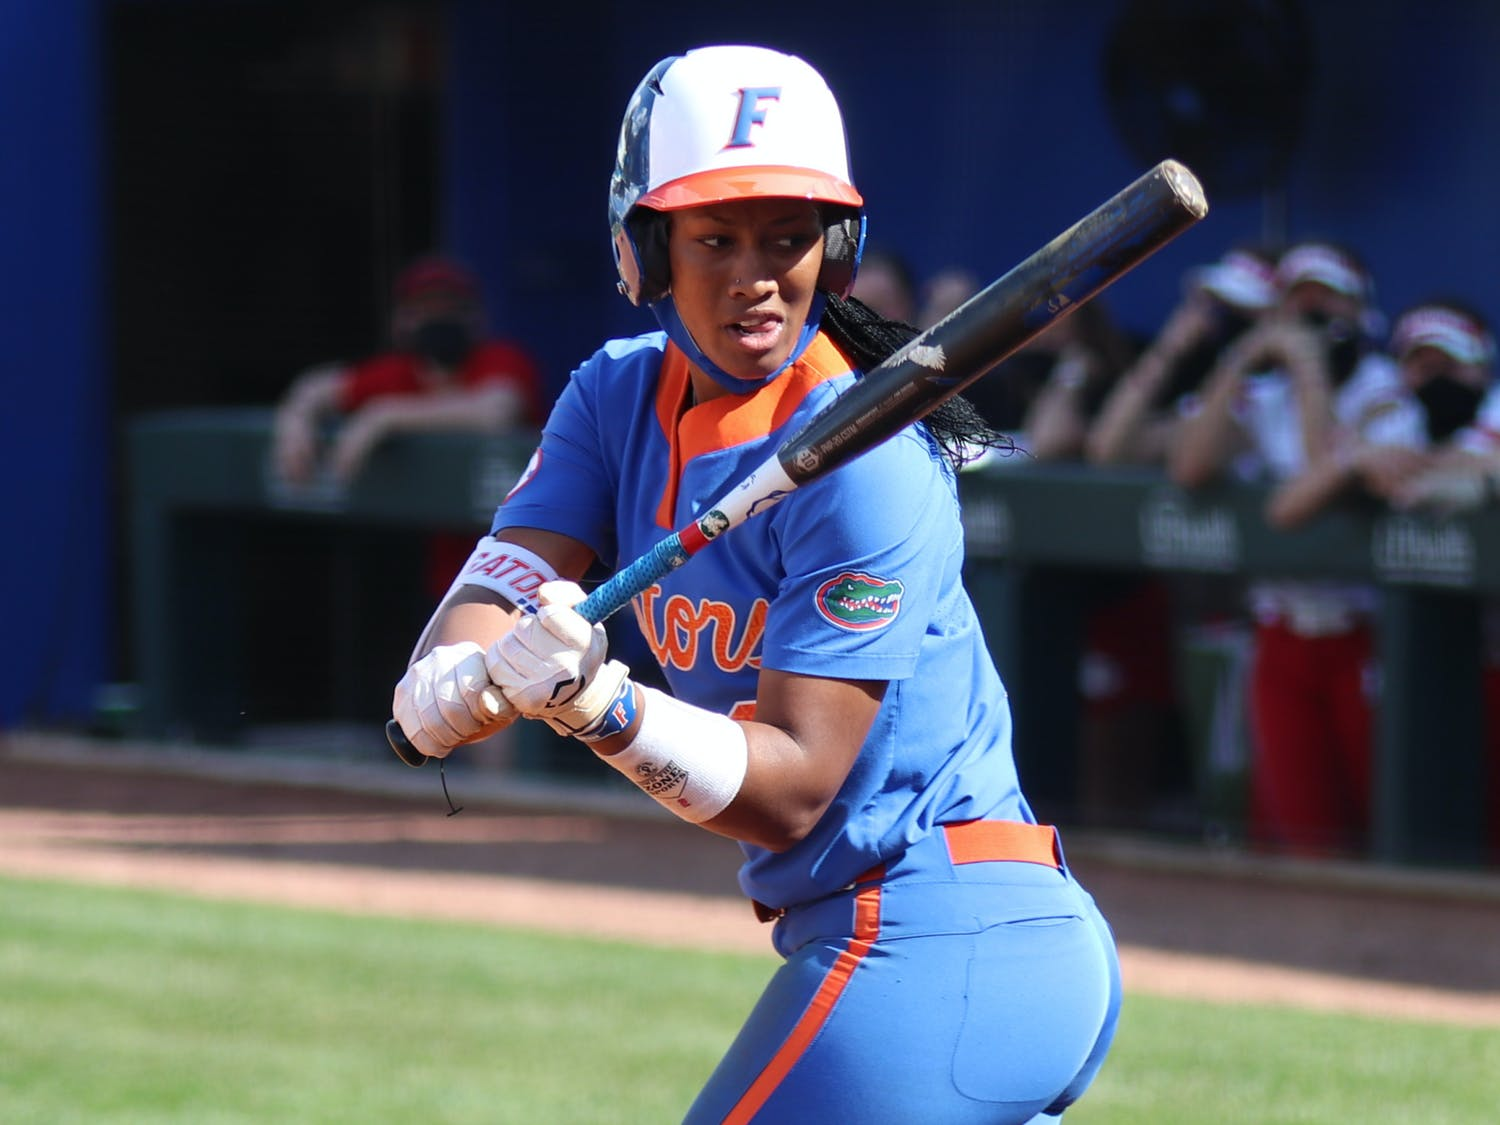 Center fielder Cheyenne Lindsey bulleted a stand-up double to left field and jolted Florida out of its rut. Photo from UF-Lousiville game Feb. 27.